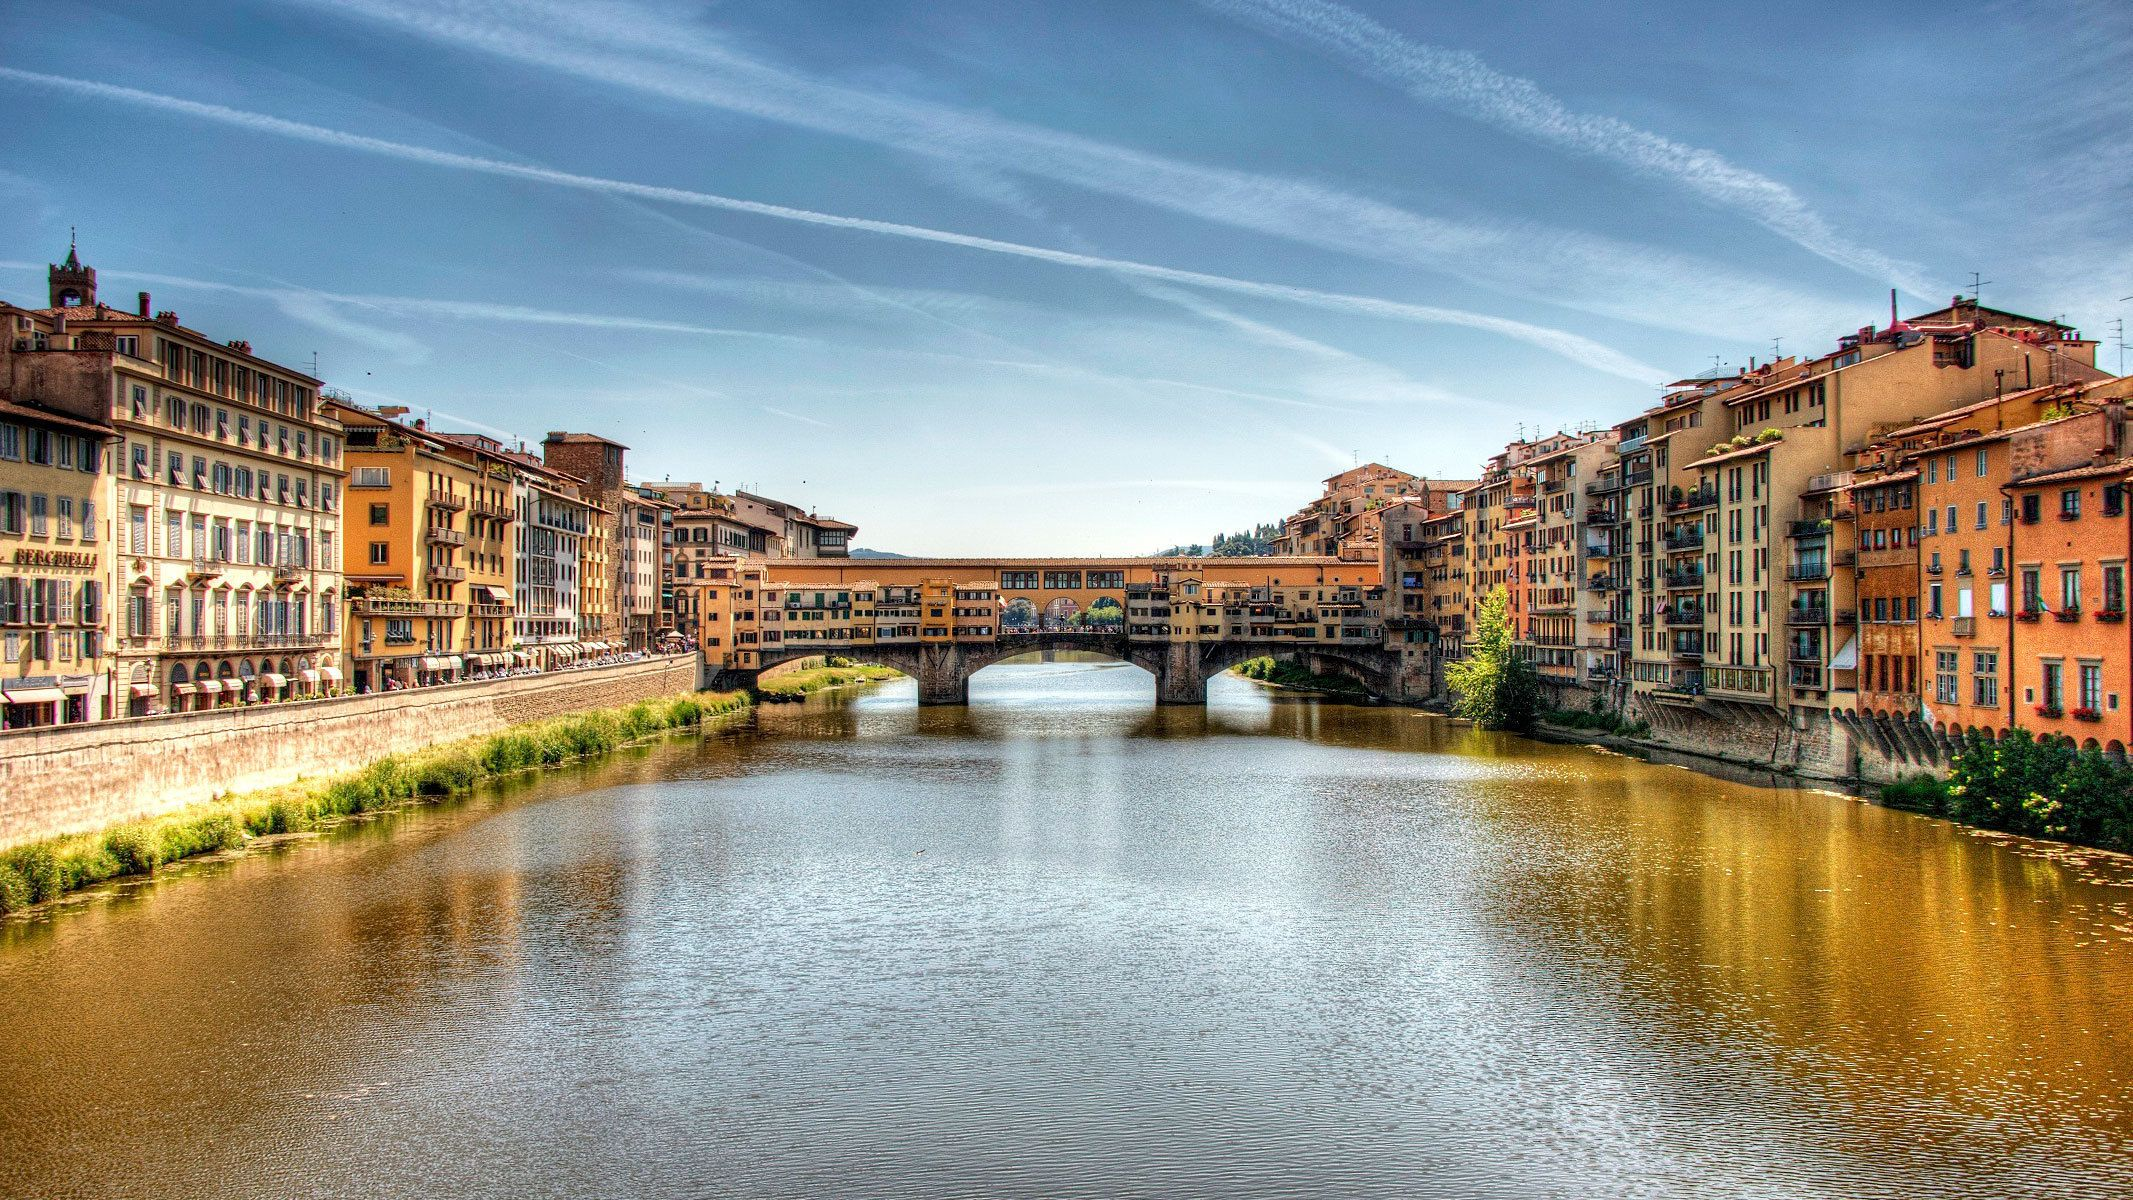 Panoramic View of the Ponte Vecchio and the Arno River in Florence